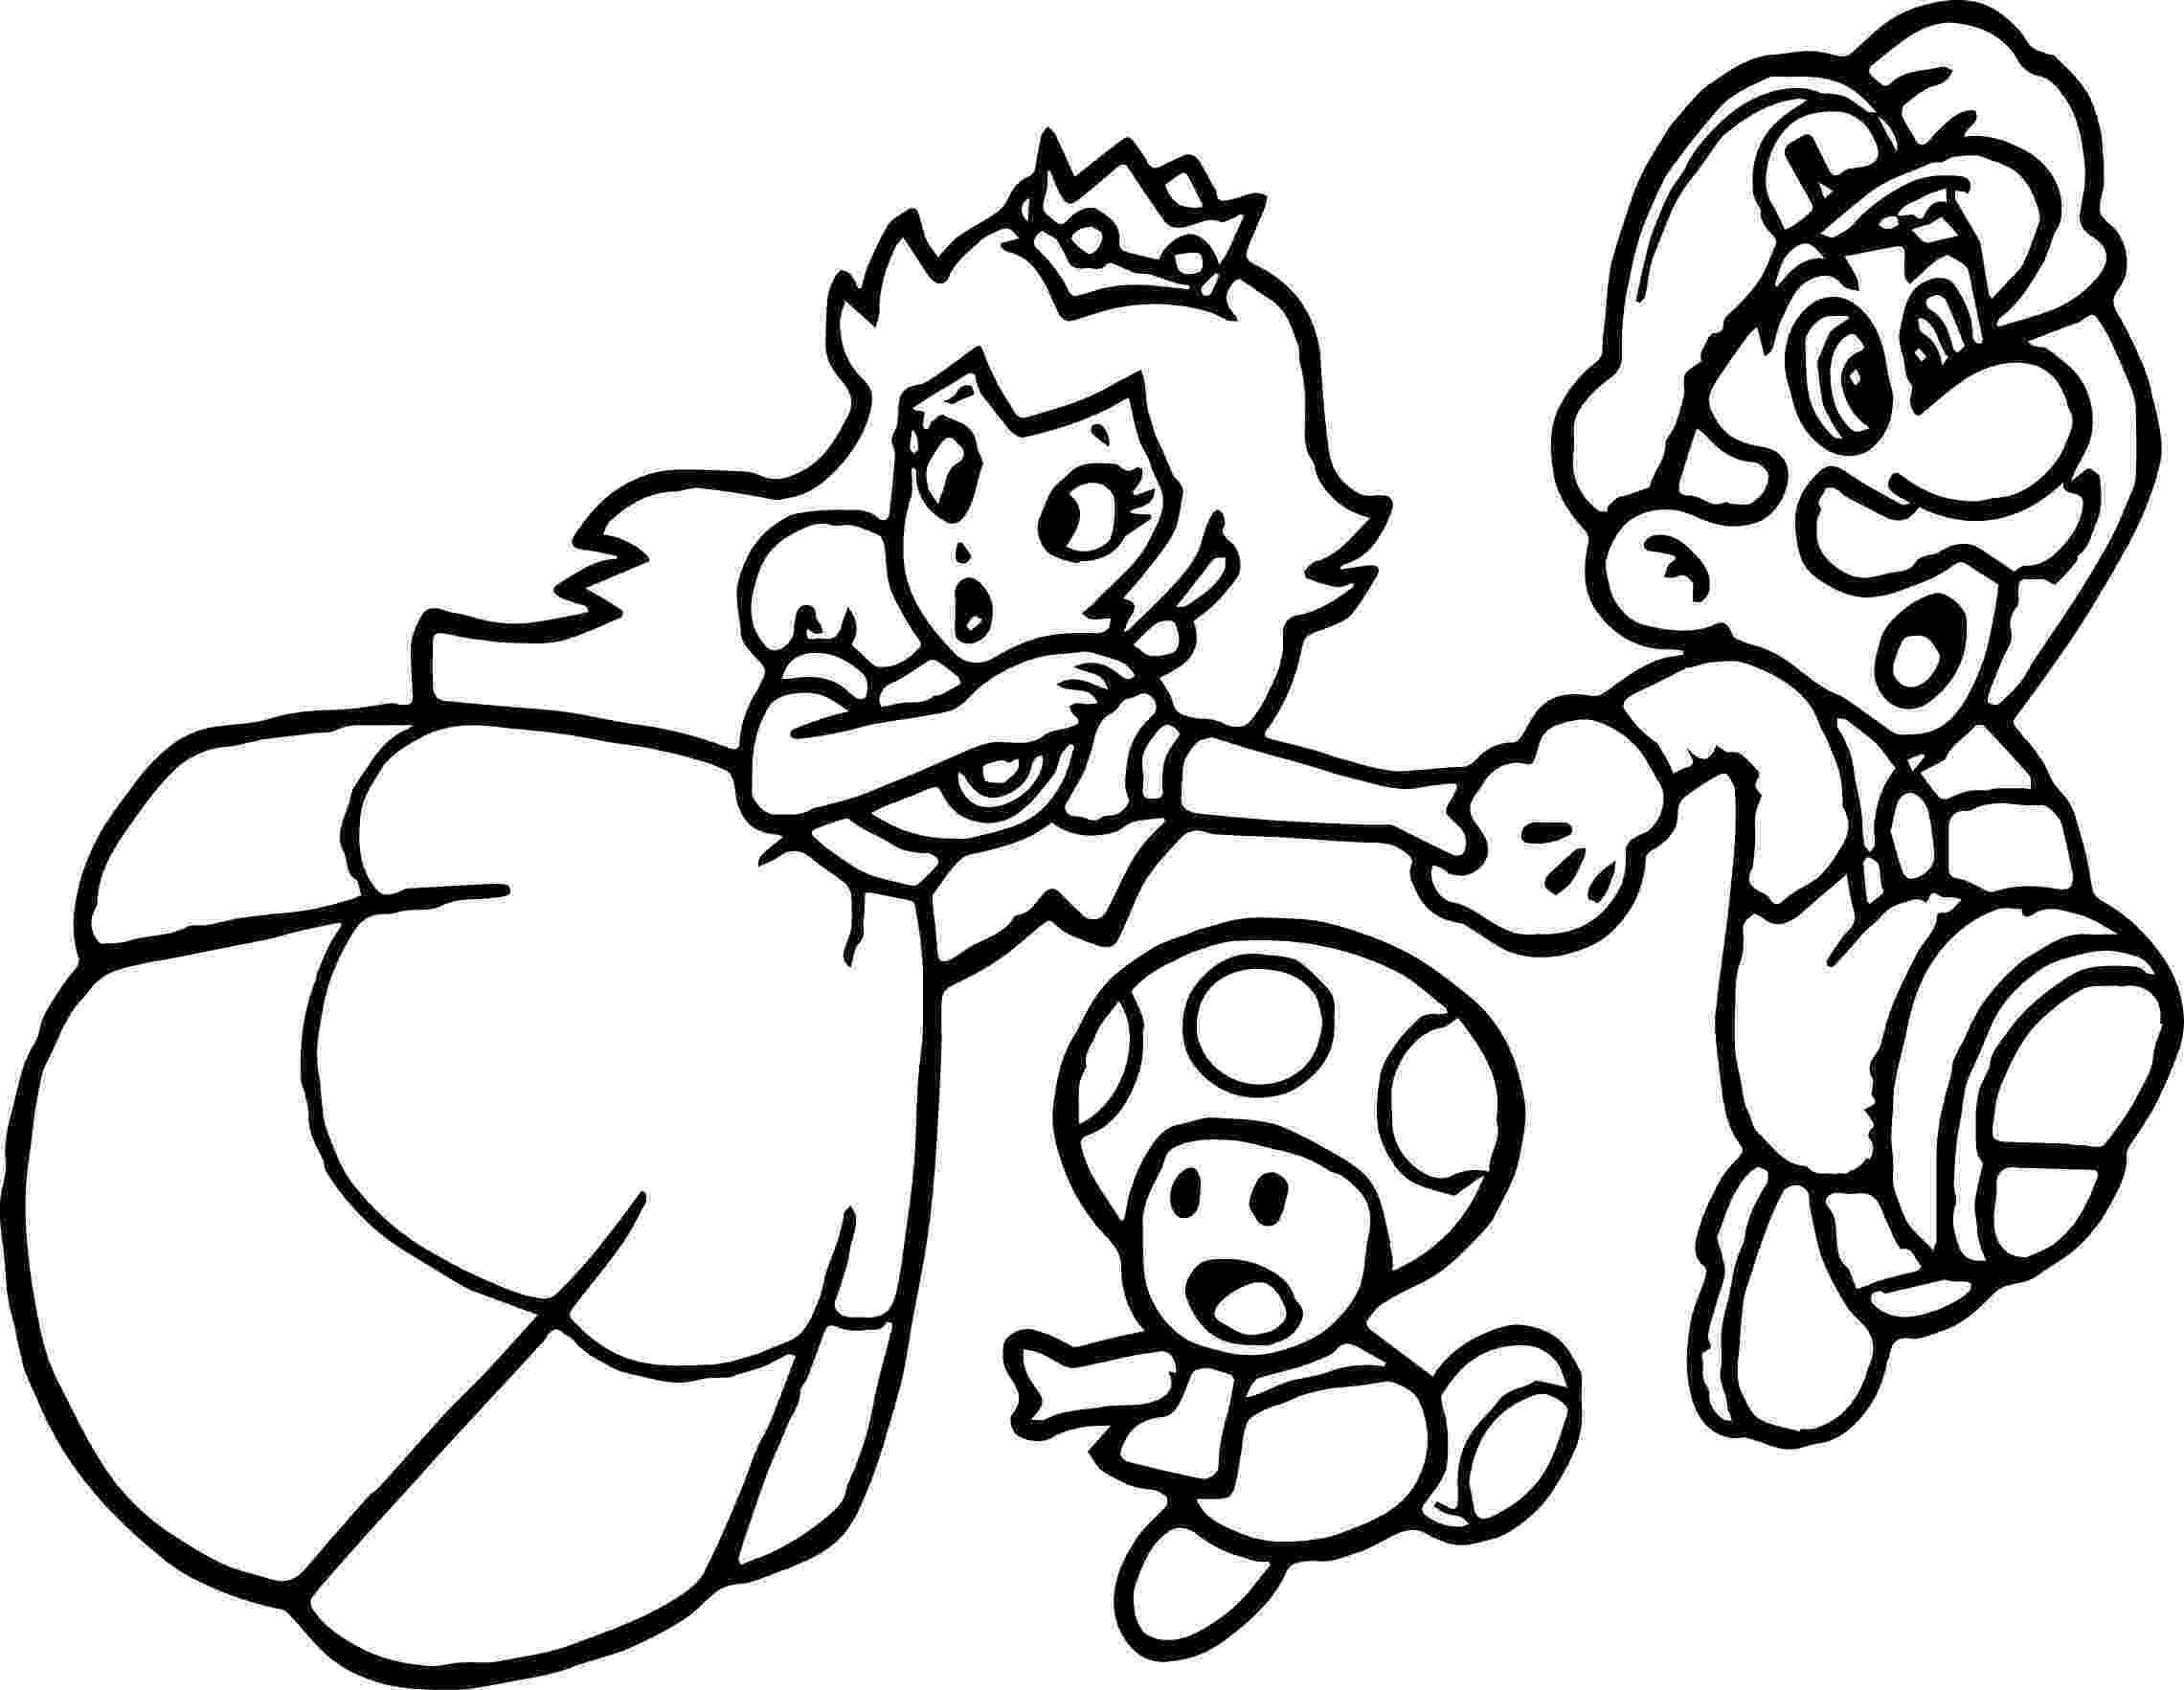 coloring pages super mario mario odyssey coloring pages printable free coloring books super mario coloring pages